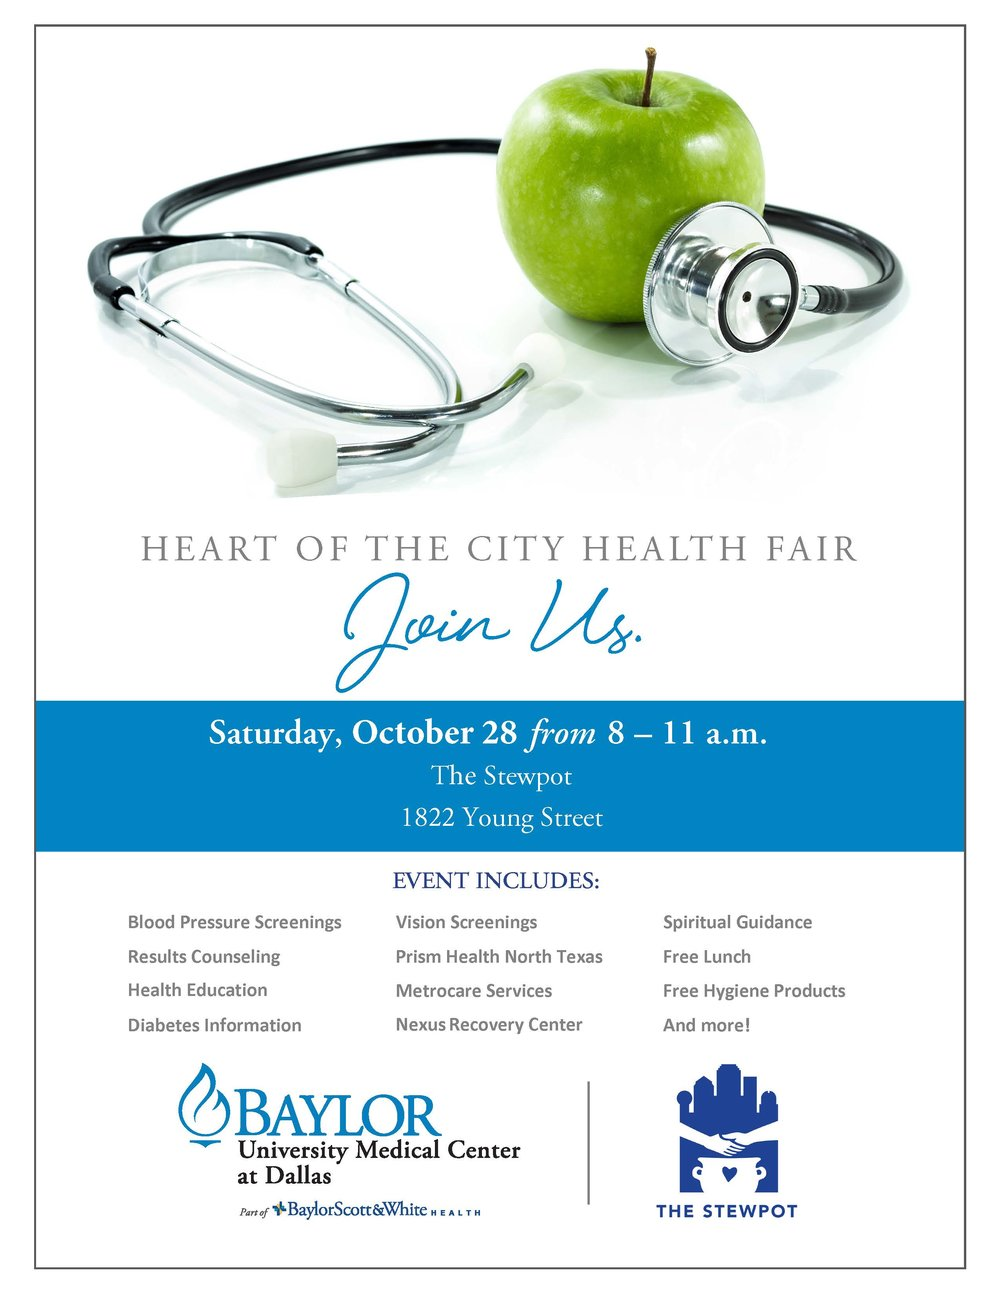 BUMCD Stewpot Health Fair Flyer 2017.jpg